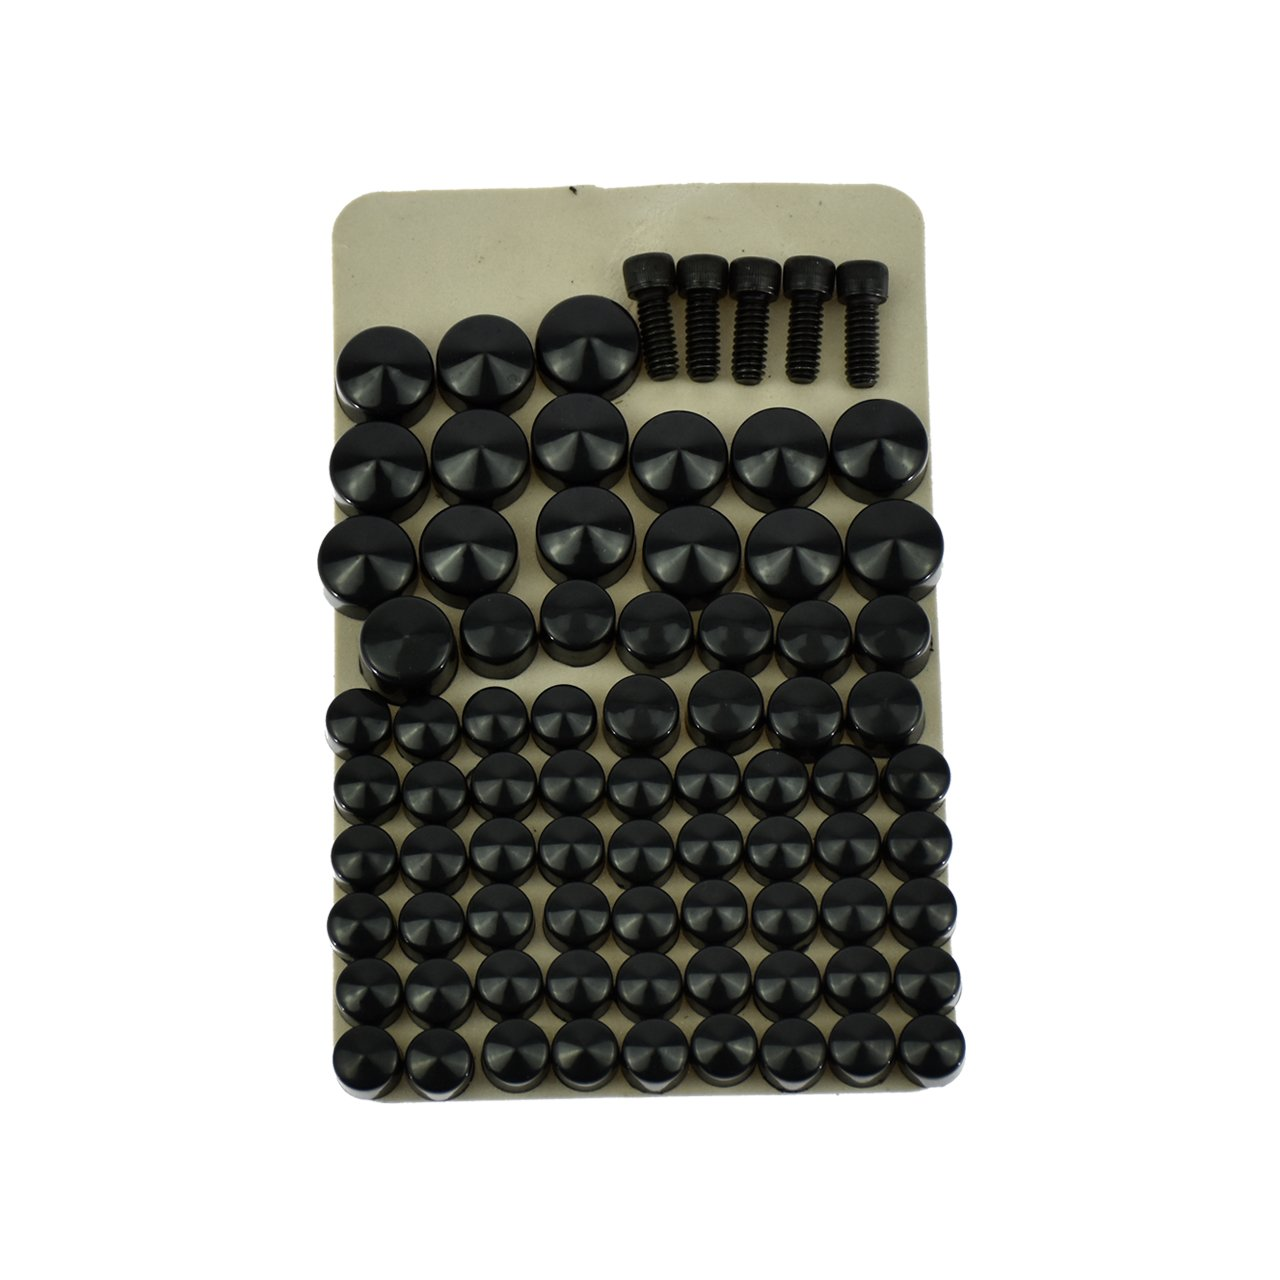 Motorcycle Black 75pcs Bolts Toppers Caps Cover for Harley Touring FLT FLH 2007-2010 2011 2012 2013 Rebacker